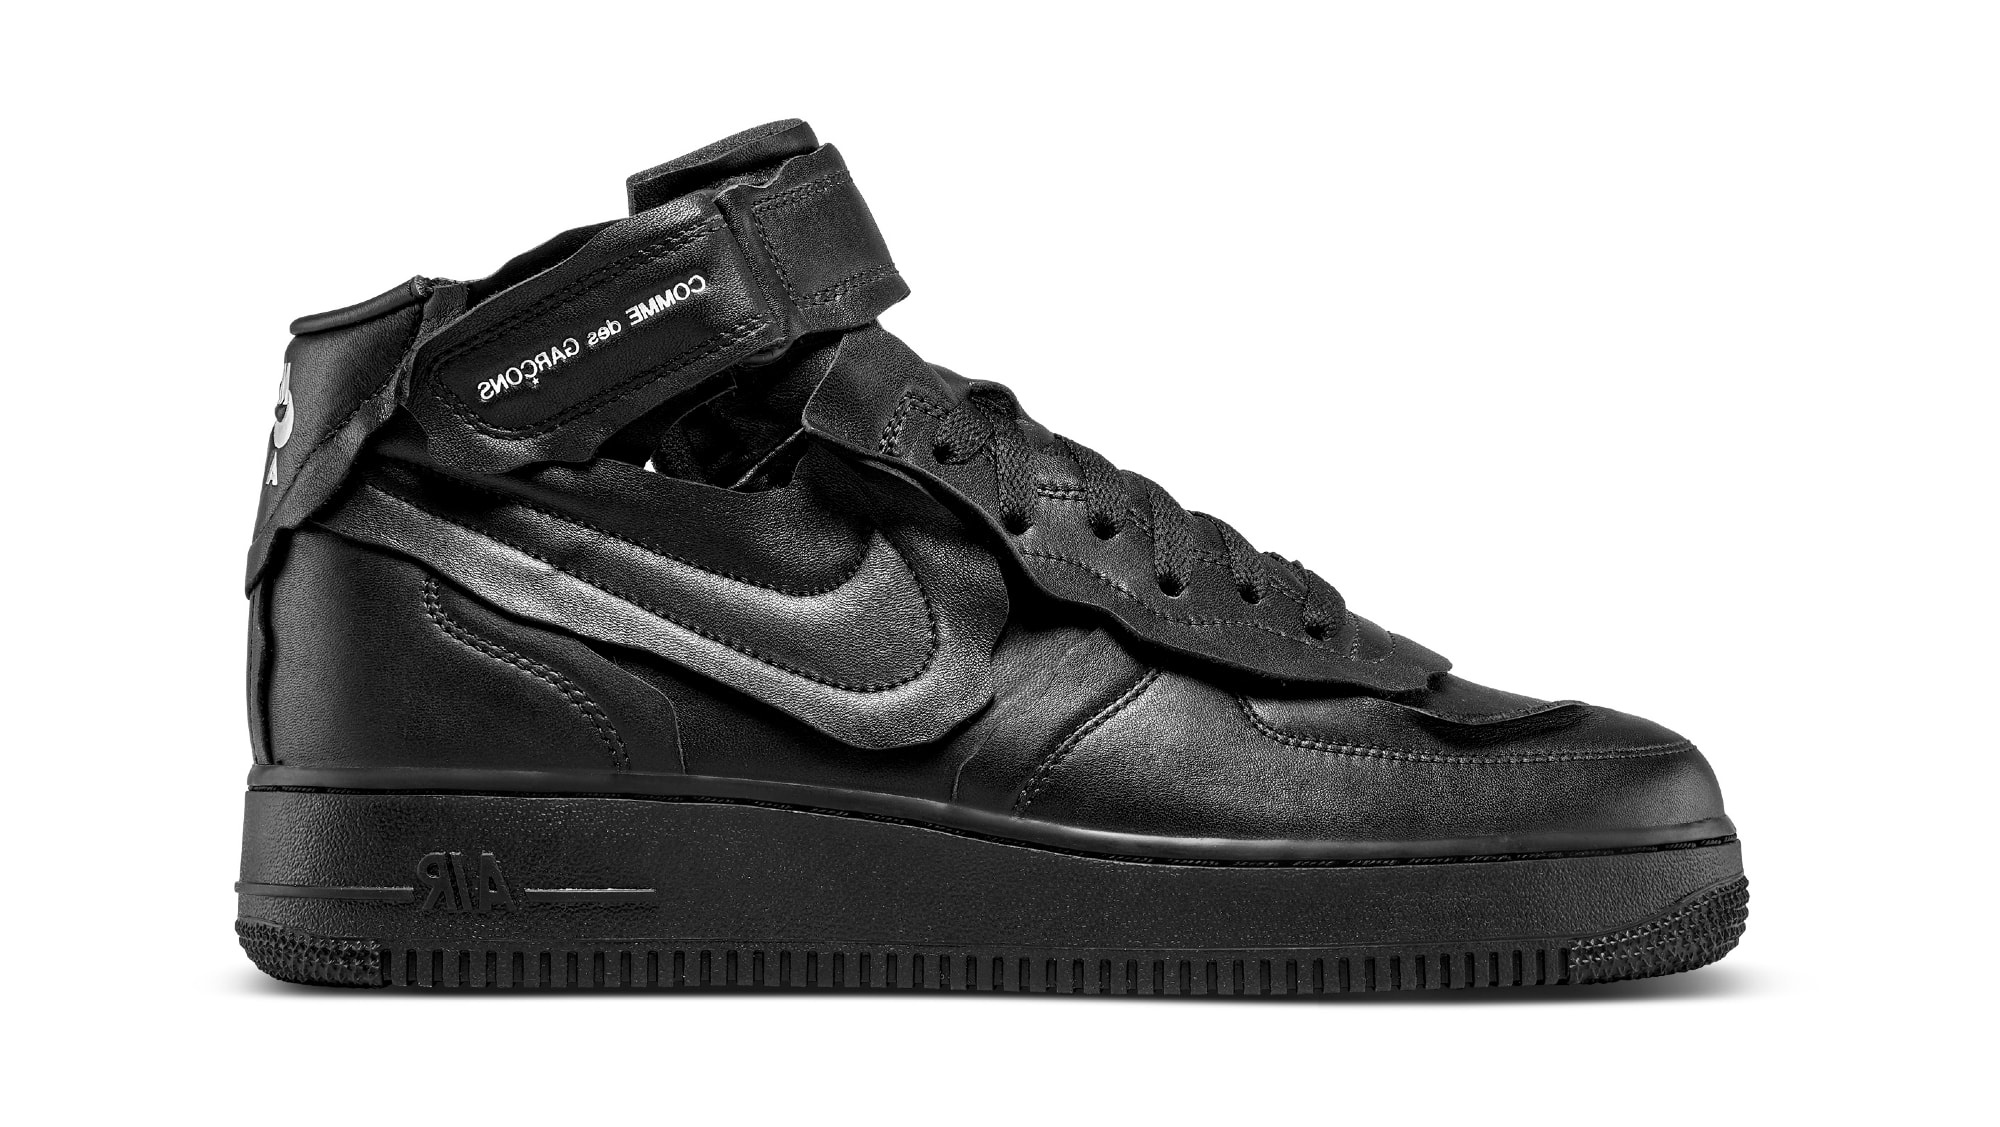 Comme des Garcons x Nike Air Force 1 Mid 'Black' DC3601-001 Release Date